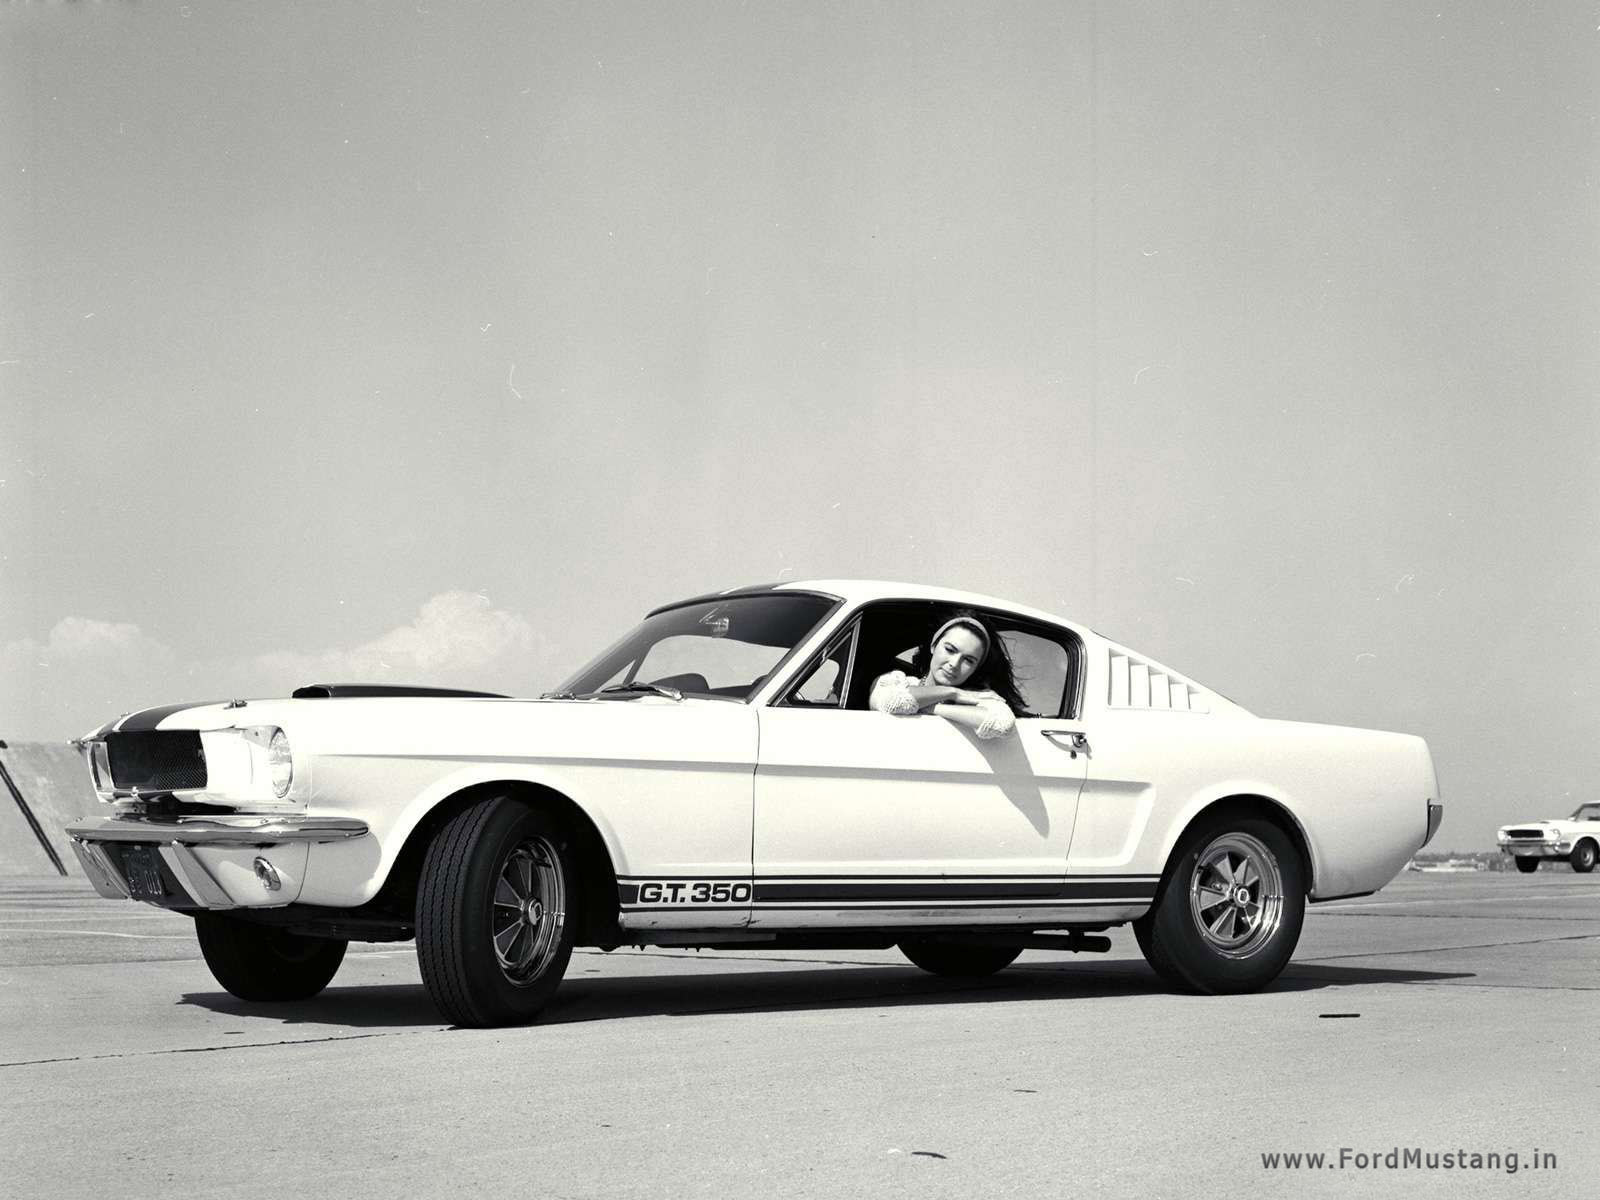 Shelby struck a deal with the Hertz Corporation in 1965 in order to